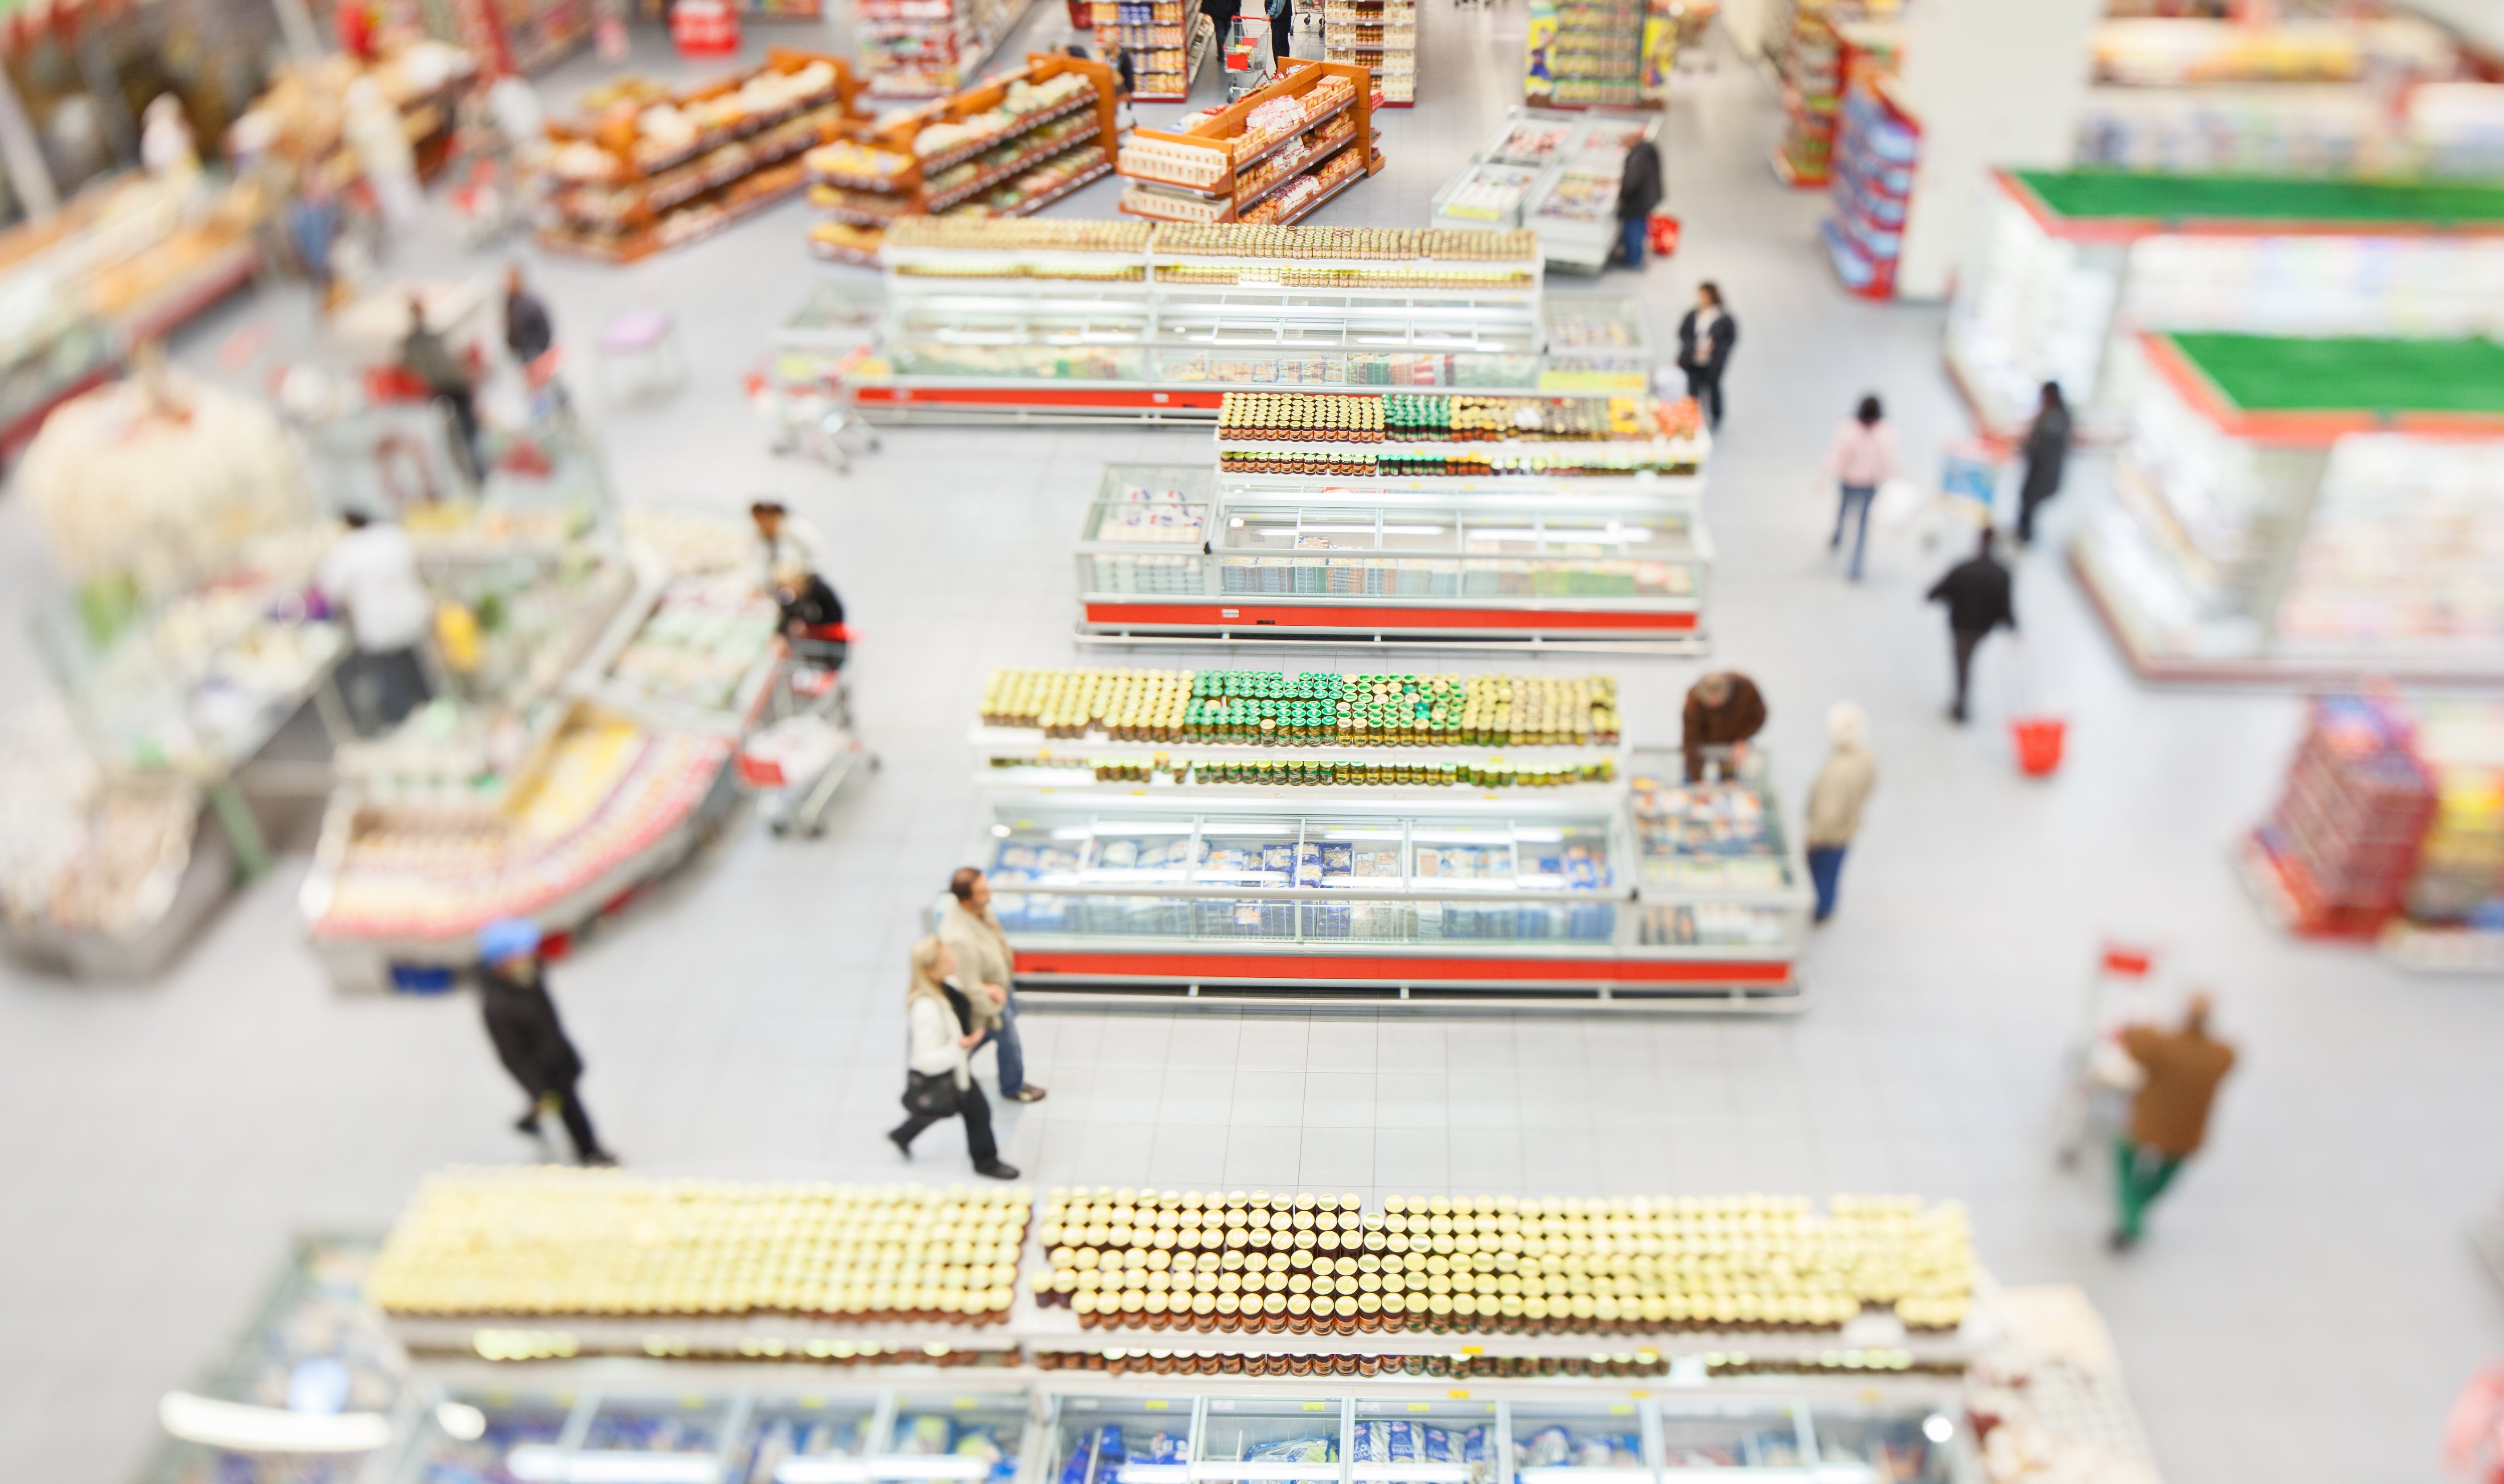 People-shopping-in-a-large-supermarket-521895511_5616x3329.jpeg